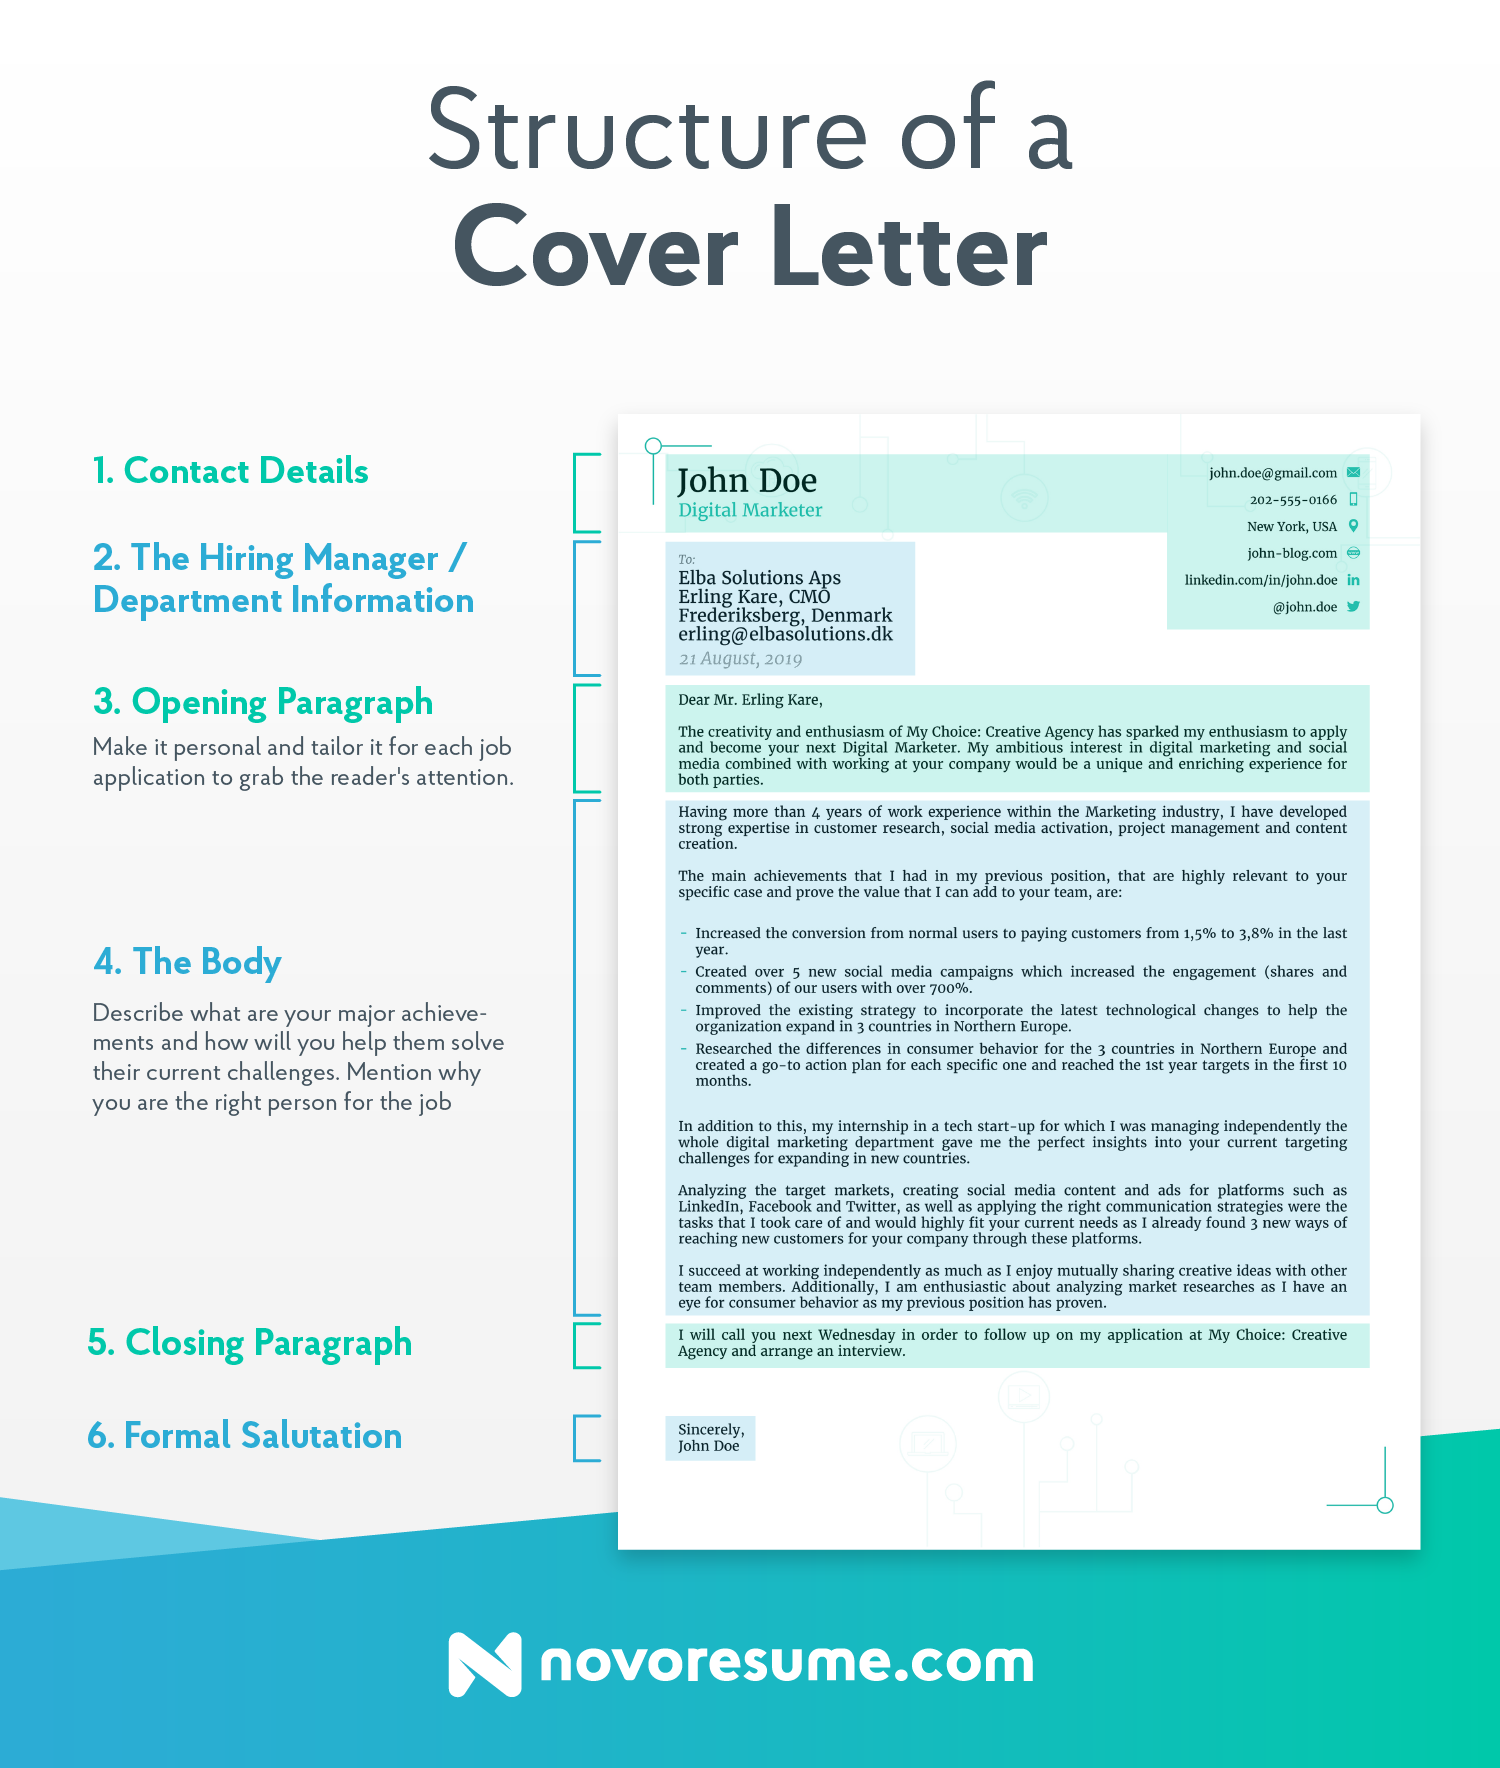 How to Write a Cover Letter & Get the Job [5+ Real-Life ...